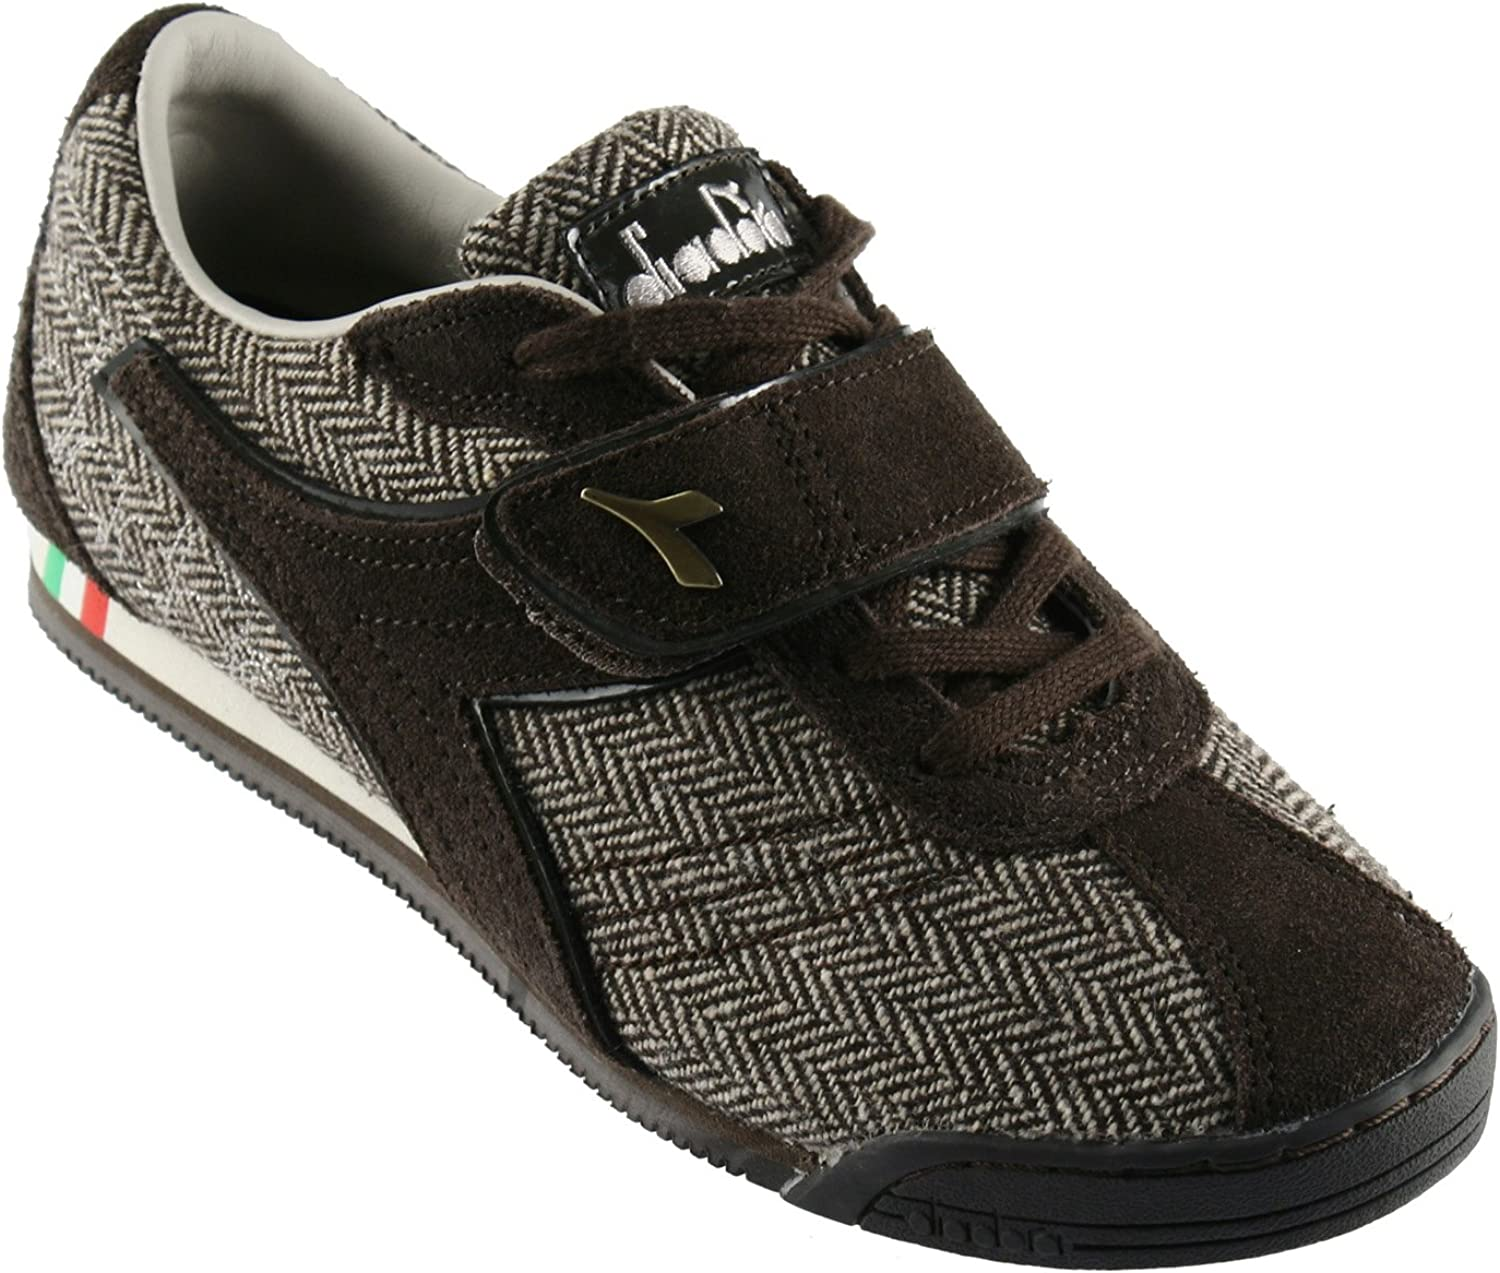 Diadora Donna Bling Ladies Fashion Sneakers, Tweed Upper and Leather